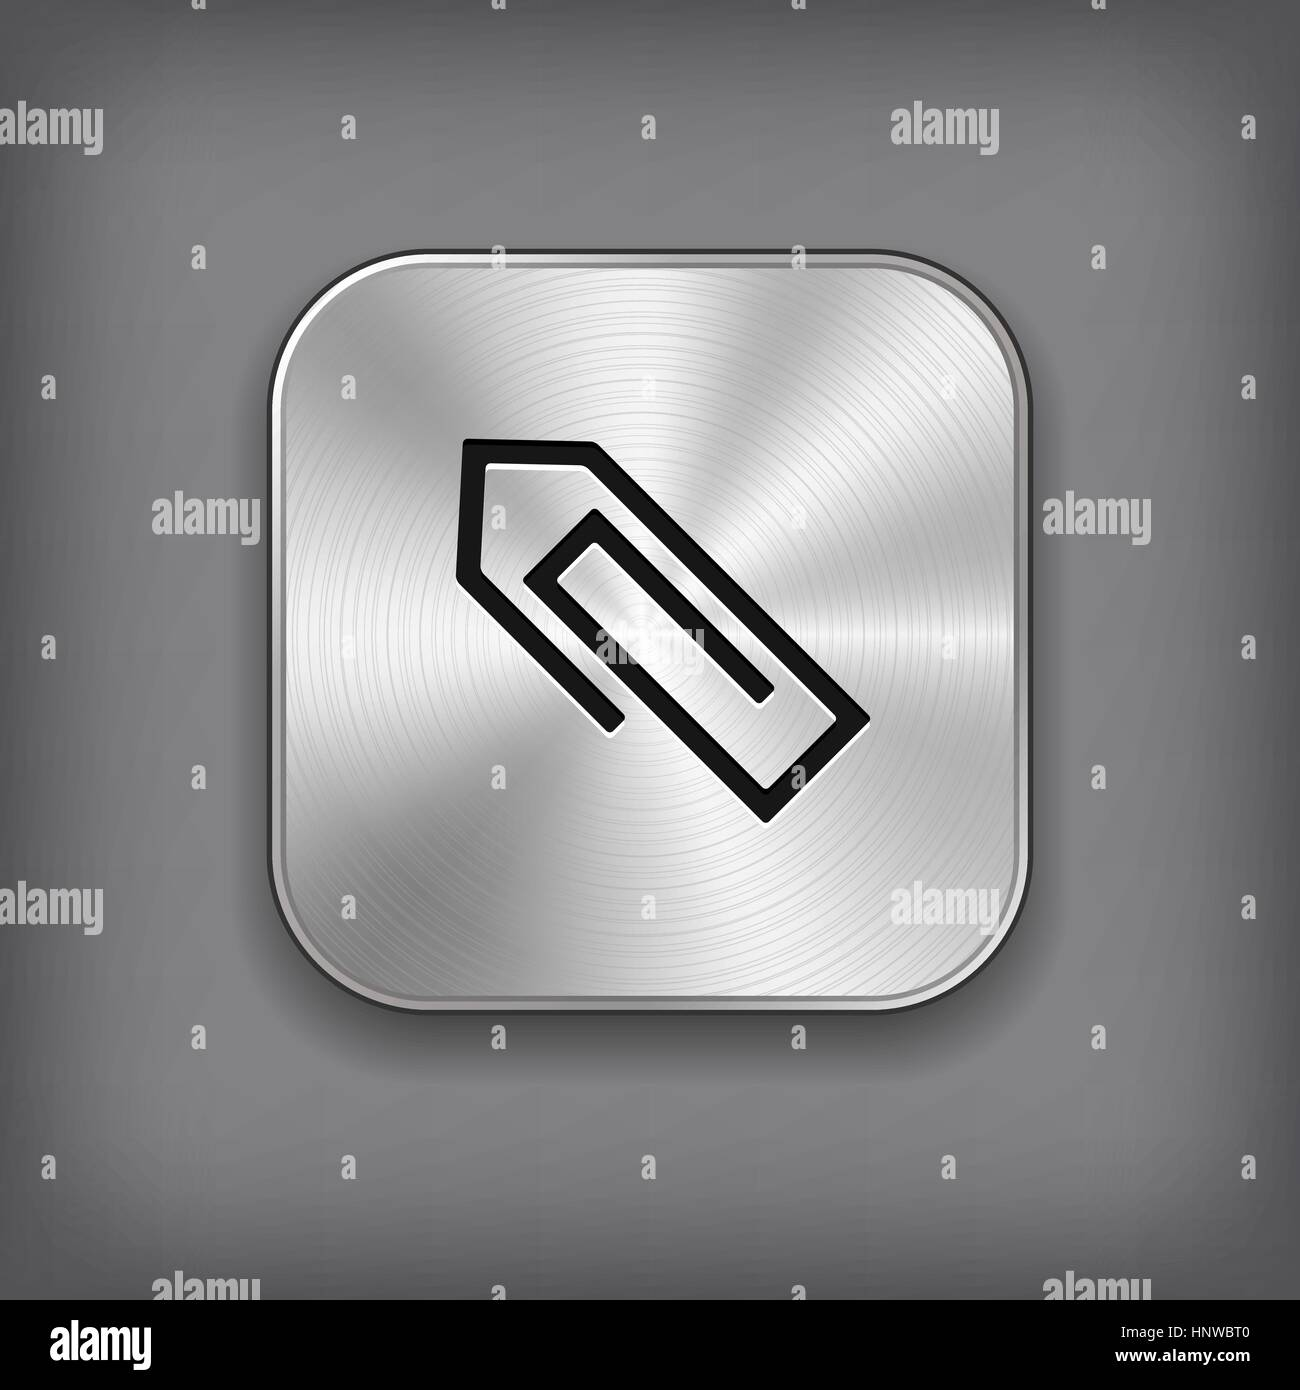 Paper clip icon - vector metal app button with shadow - Stock Vector